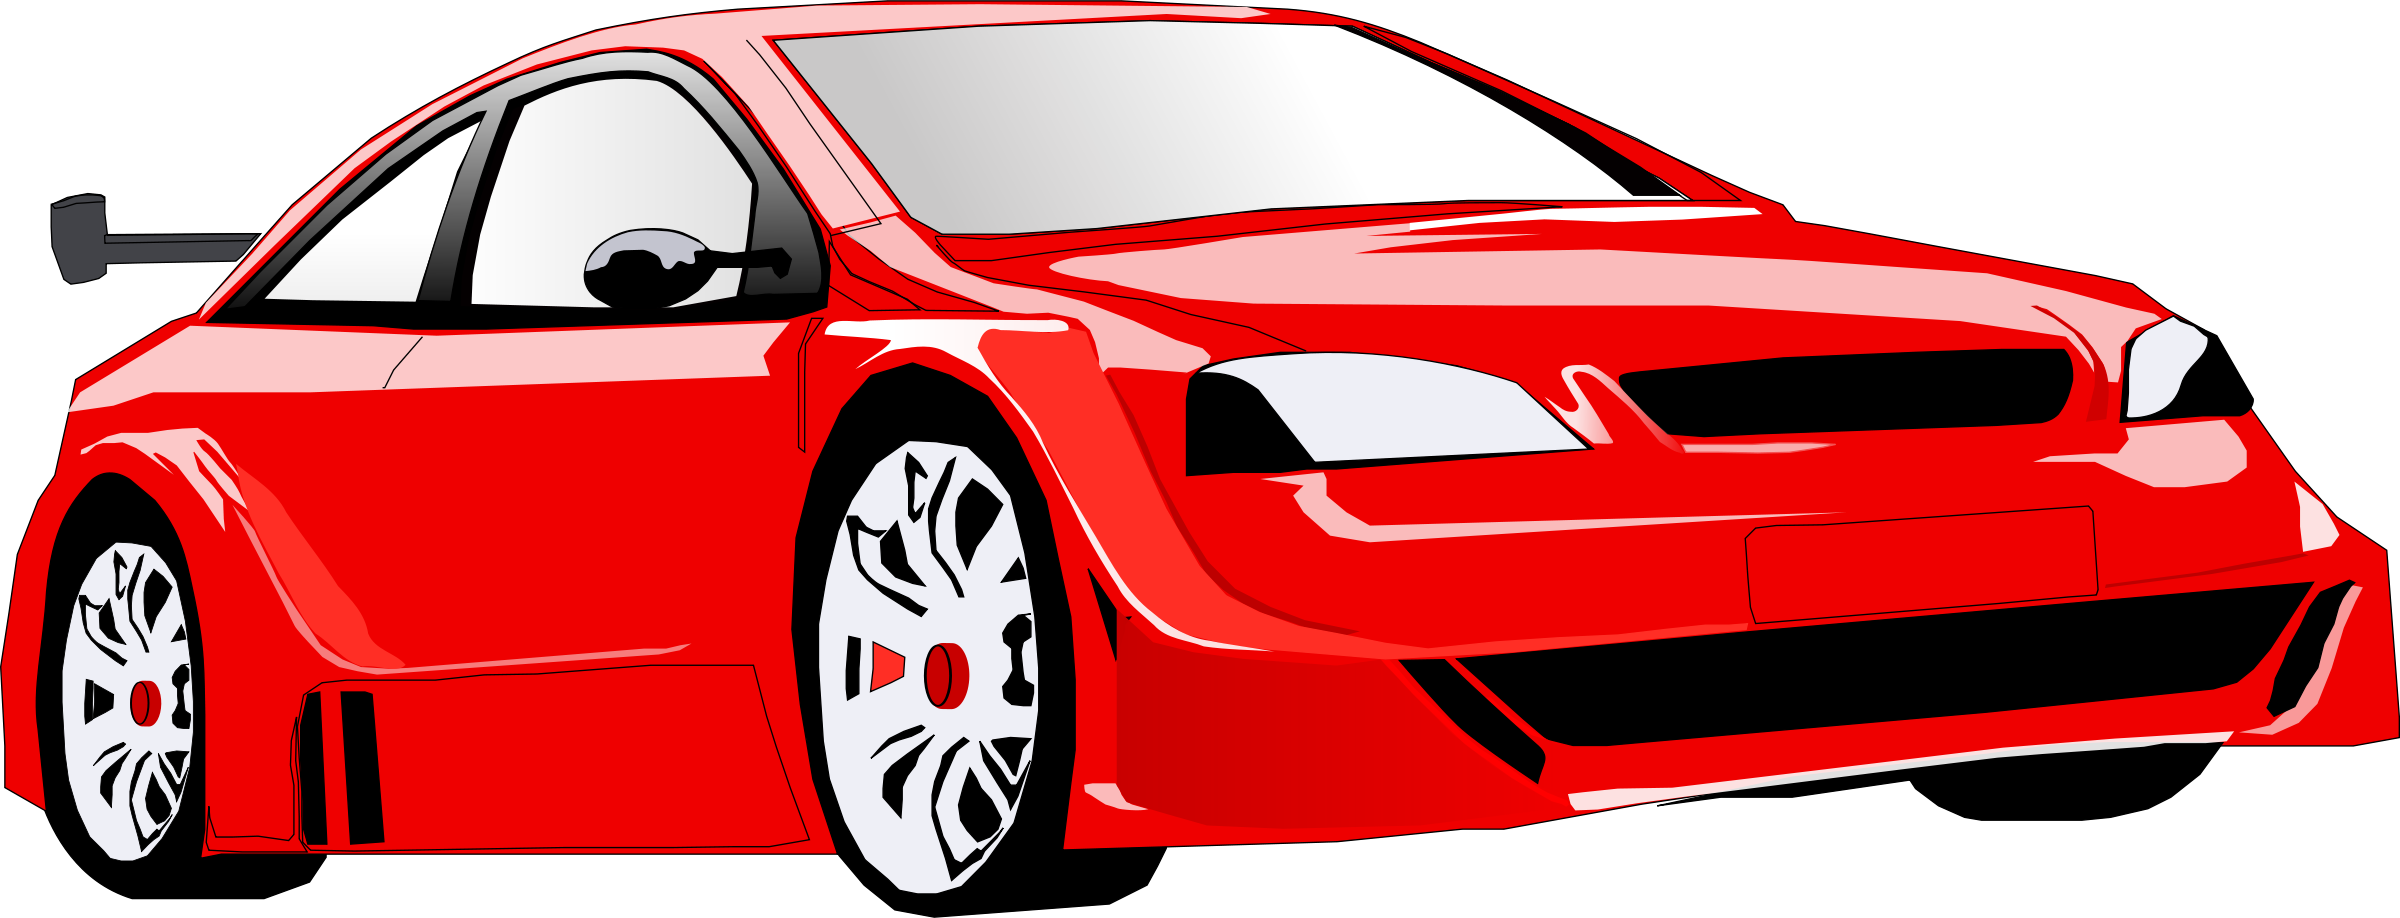 Cars Car Clipart Free Large Images-Cars car clipart free large images-5